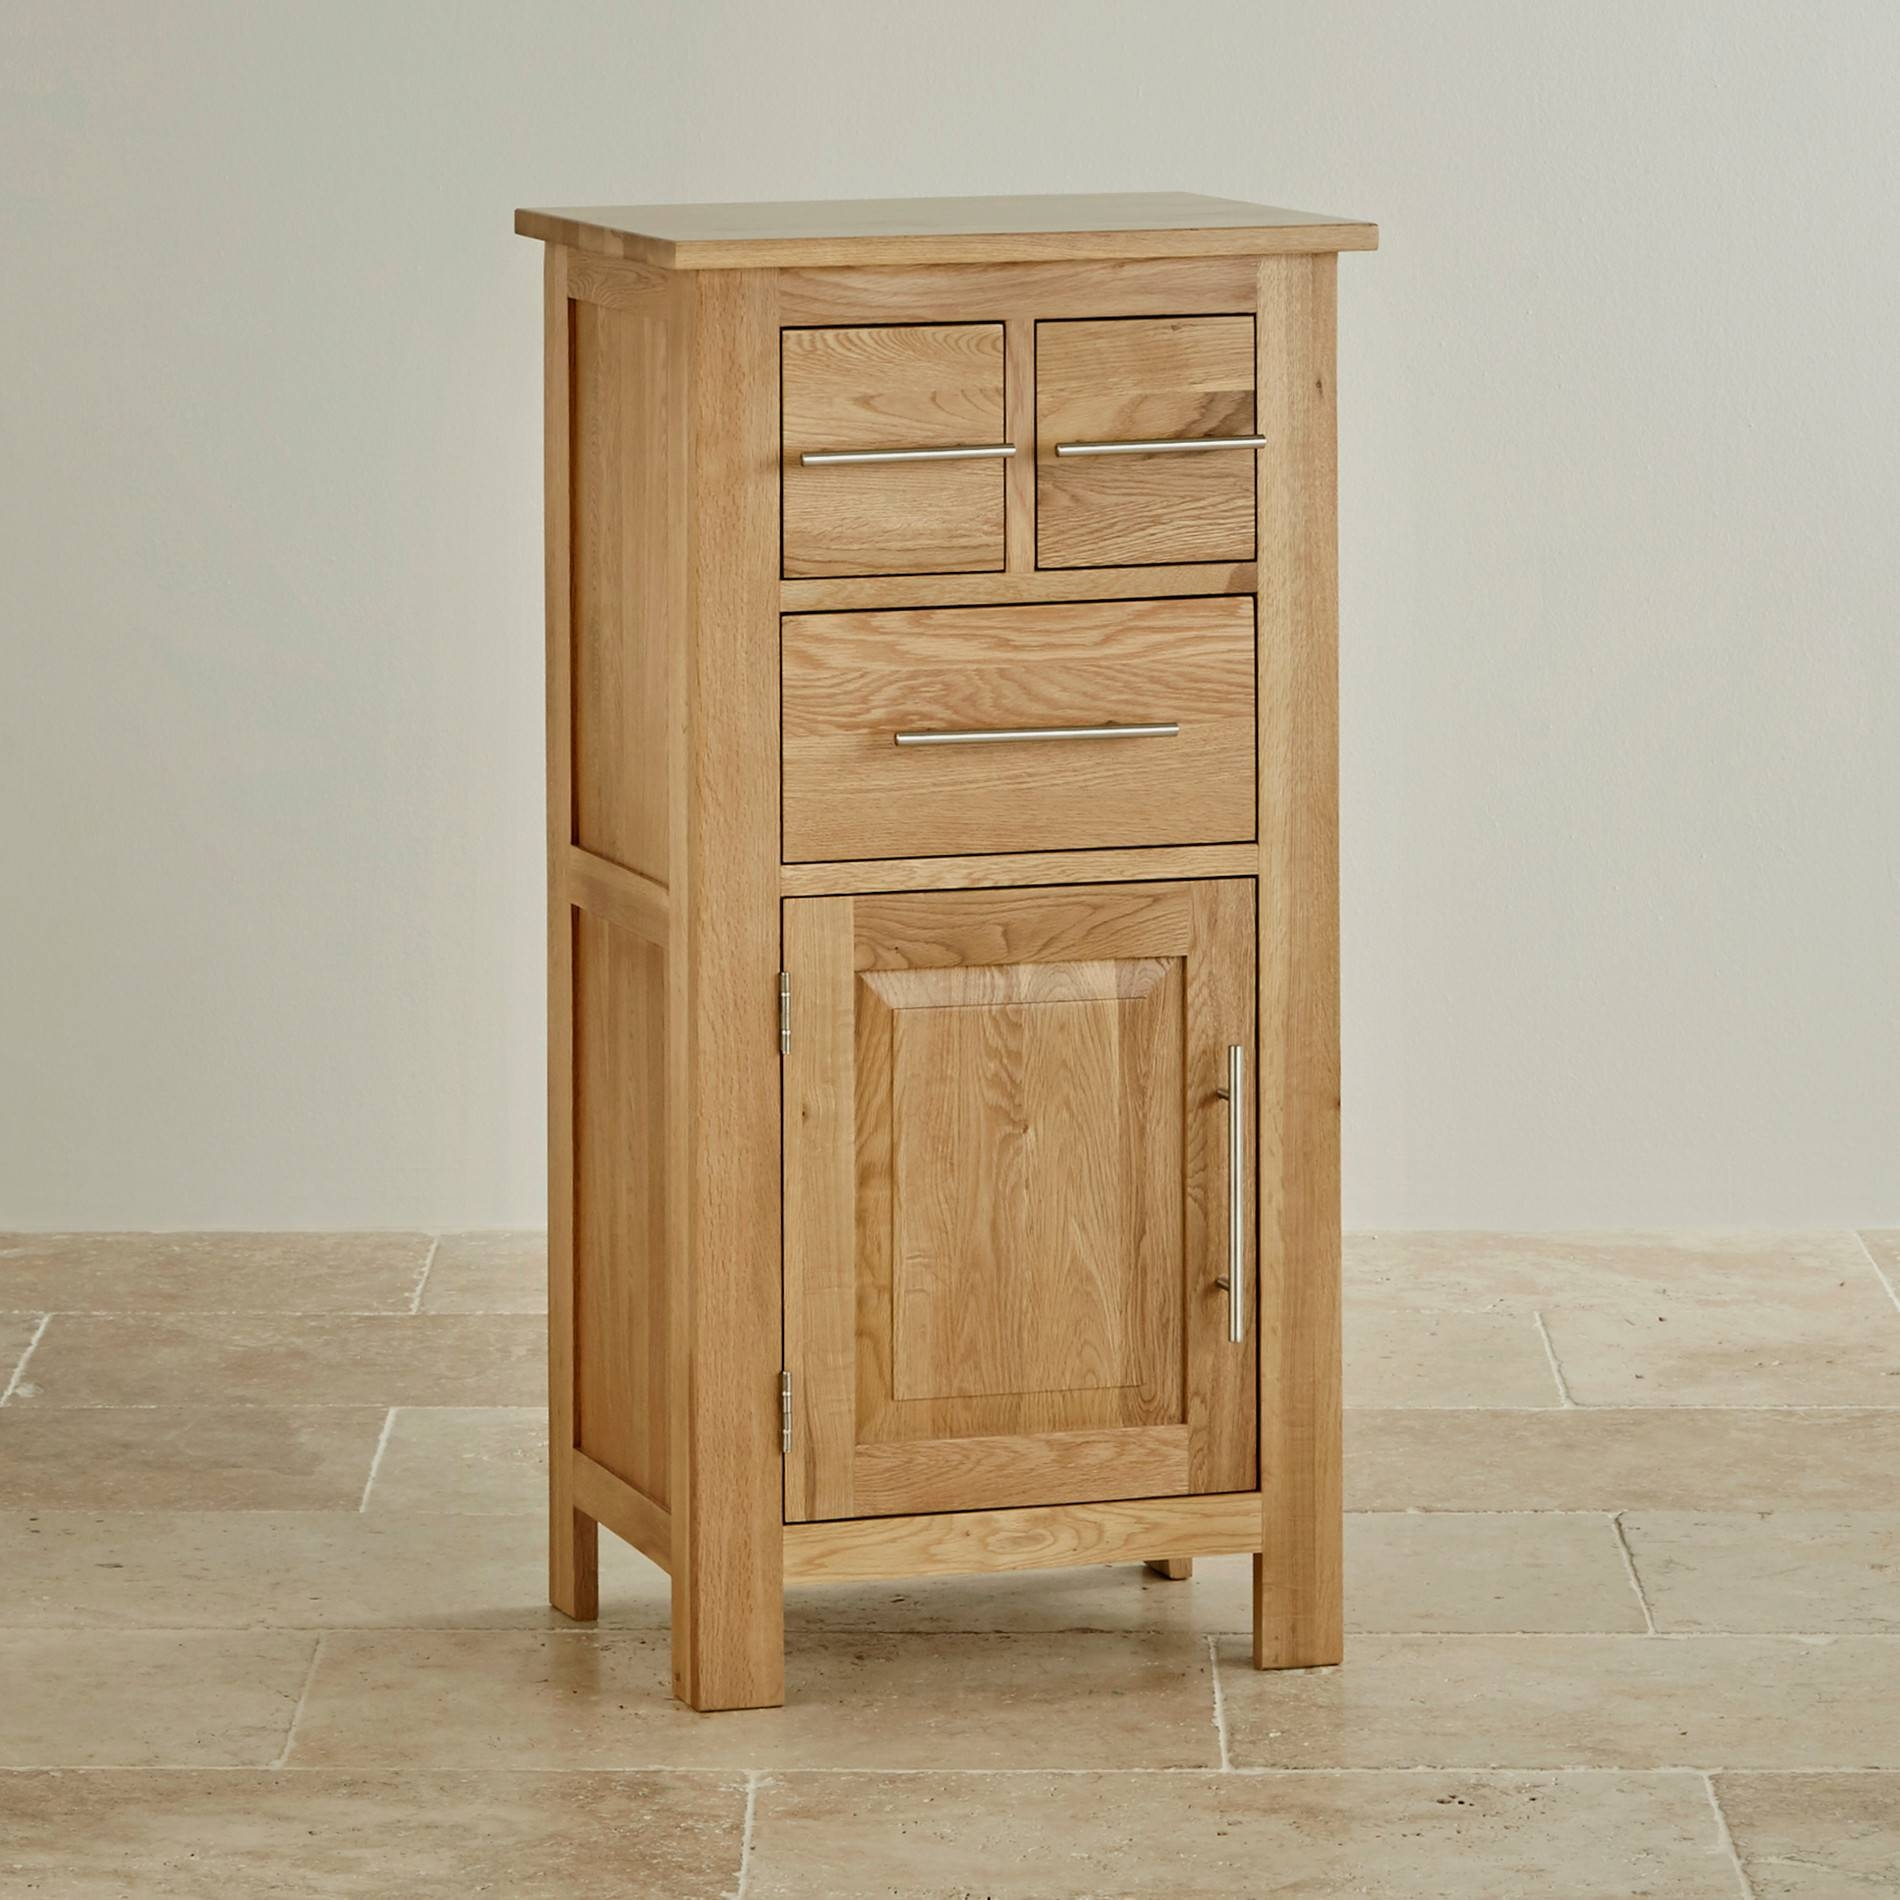 Rivermead Natural Solid Oak Storage Unitoak Furniture Land Intended For Single Oak Wardrobes With Drawers (View 11 of 15)